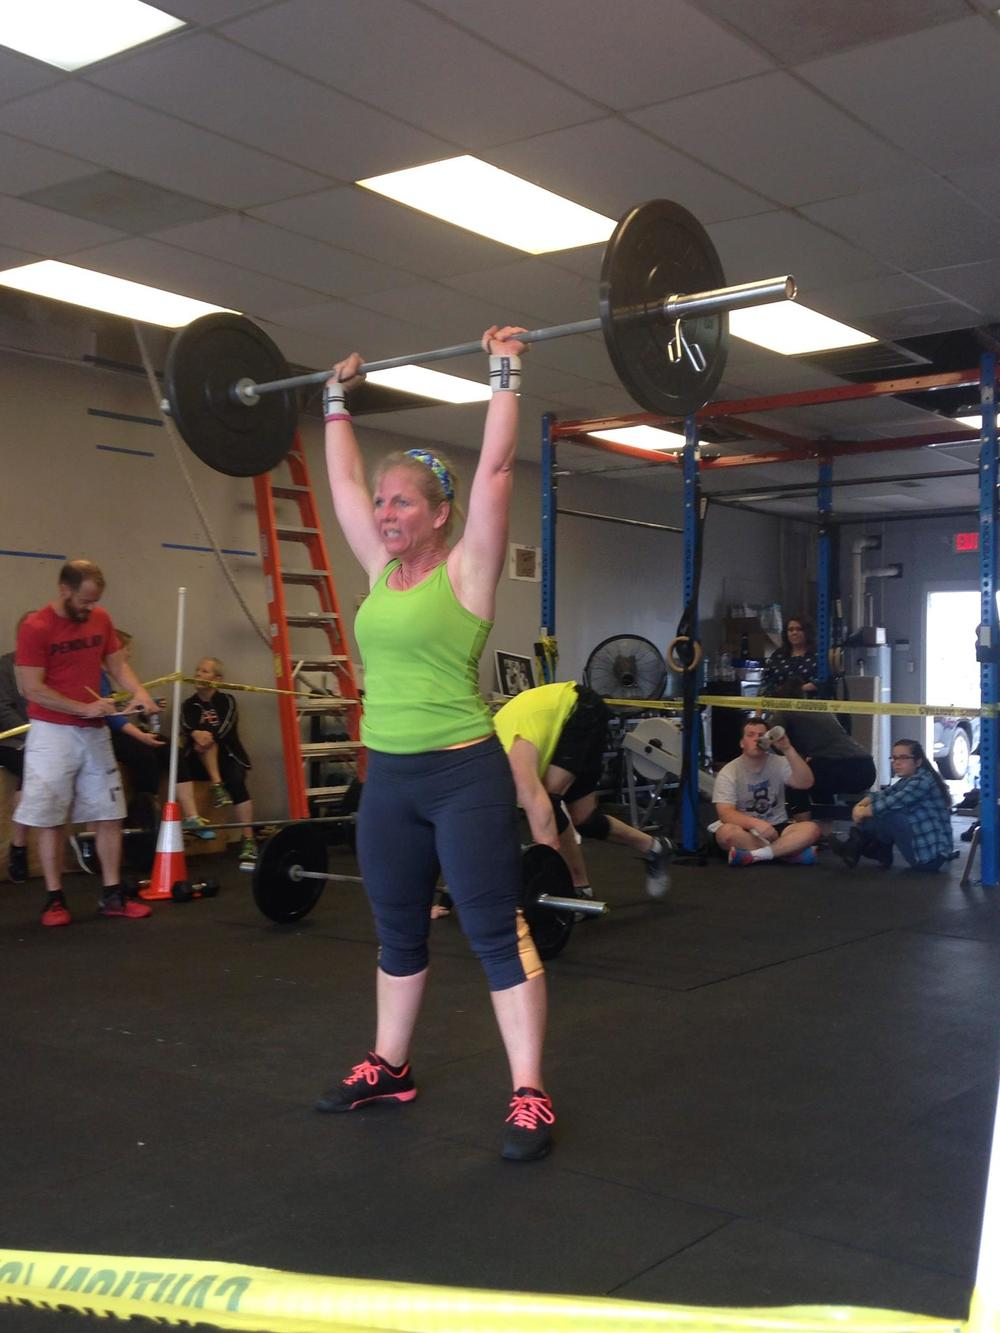 Celebrating life at 50 and showing no sign of slowing down!Joni crushed 16.5 for a strong Open this year.